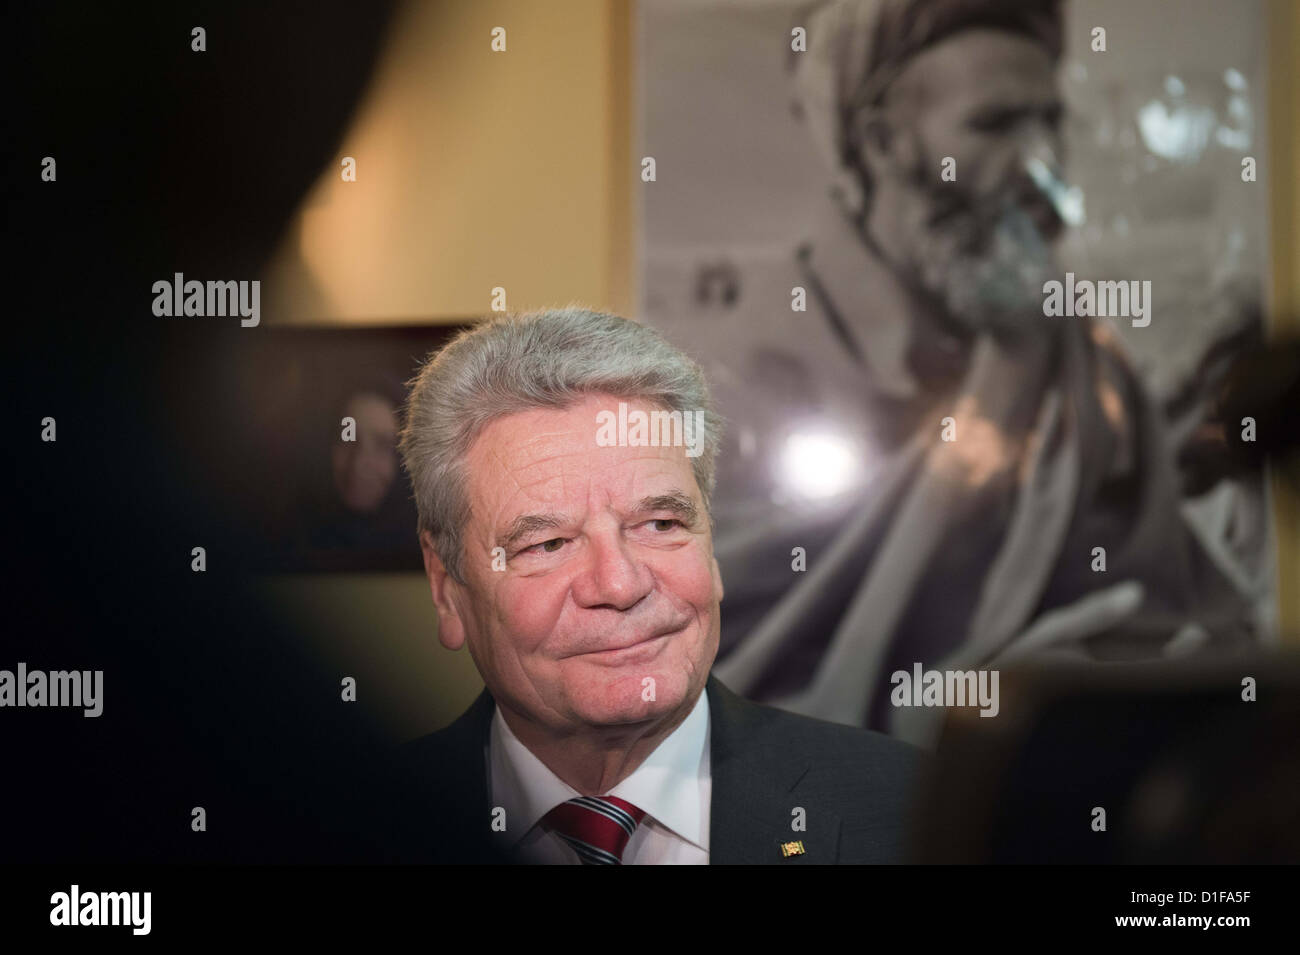 German President Joachim Gauck talks to soldiers as he visits the German Armed Forces at Camp Marmal in Masar-i - Stock Image